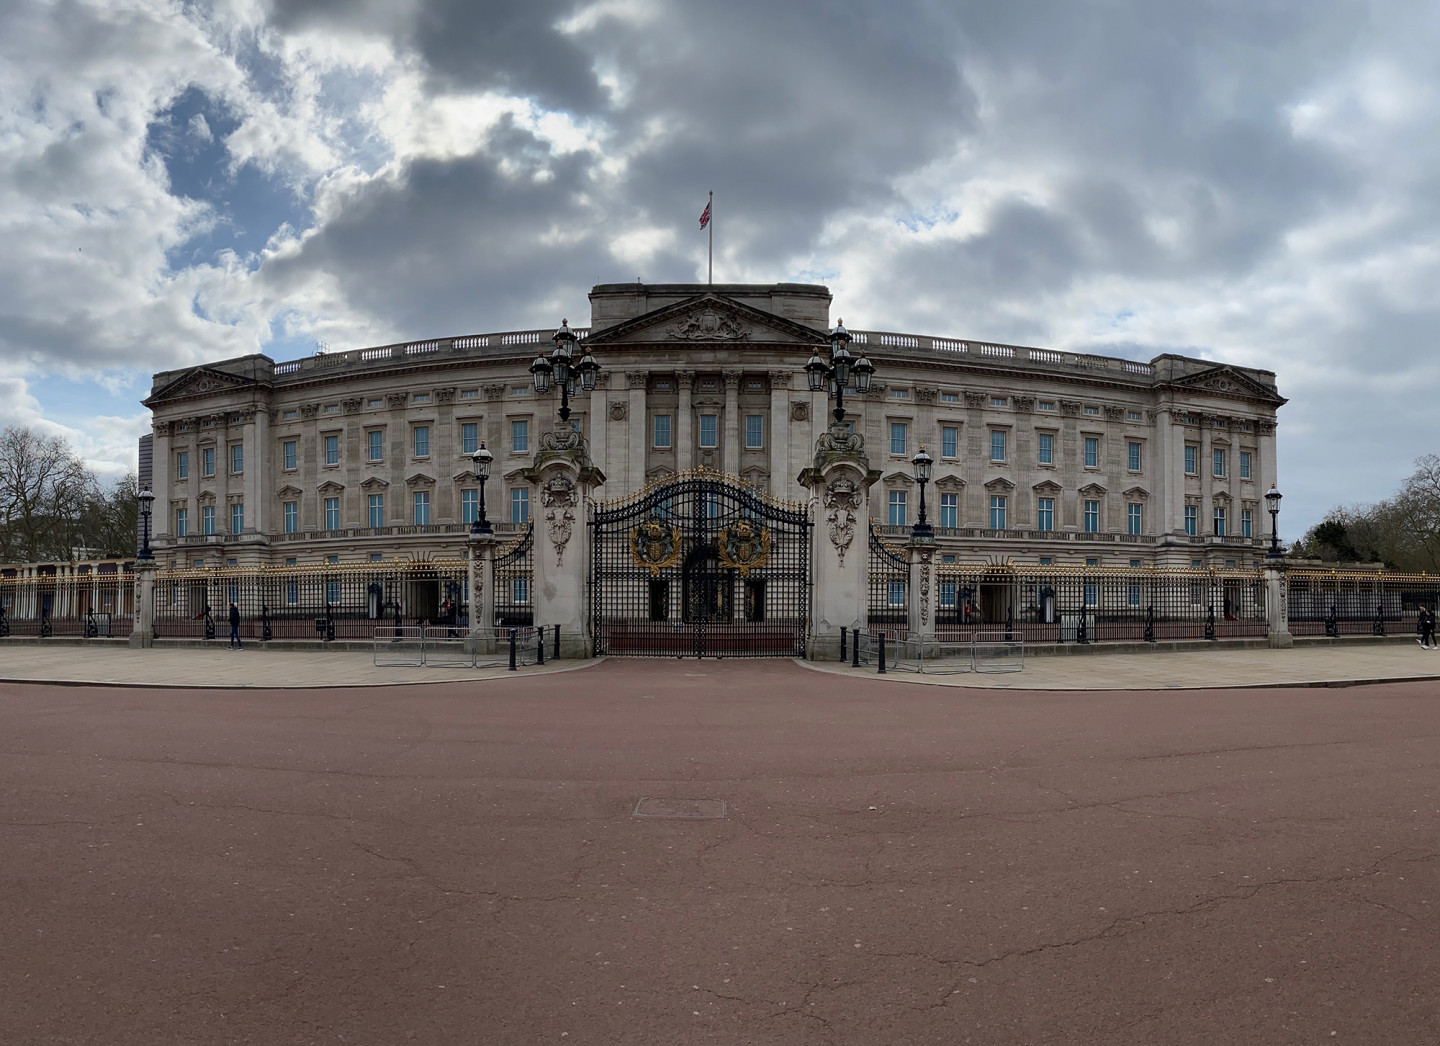 Taken on 28th March while cycling past Buckingham Palace. © Adam Becksmith